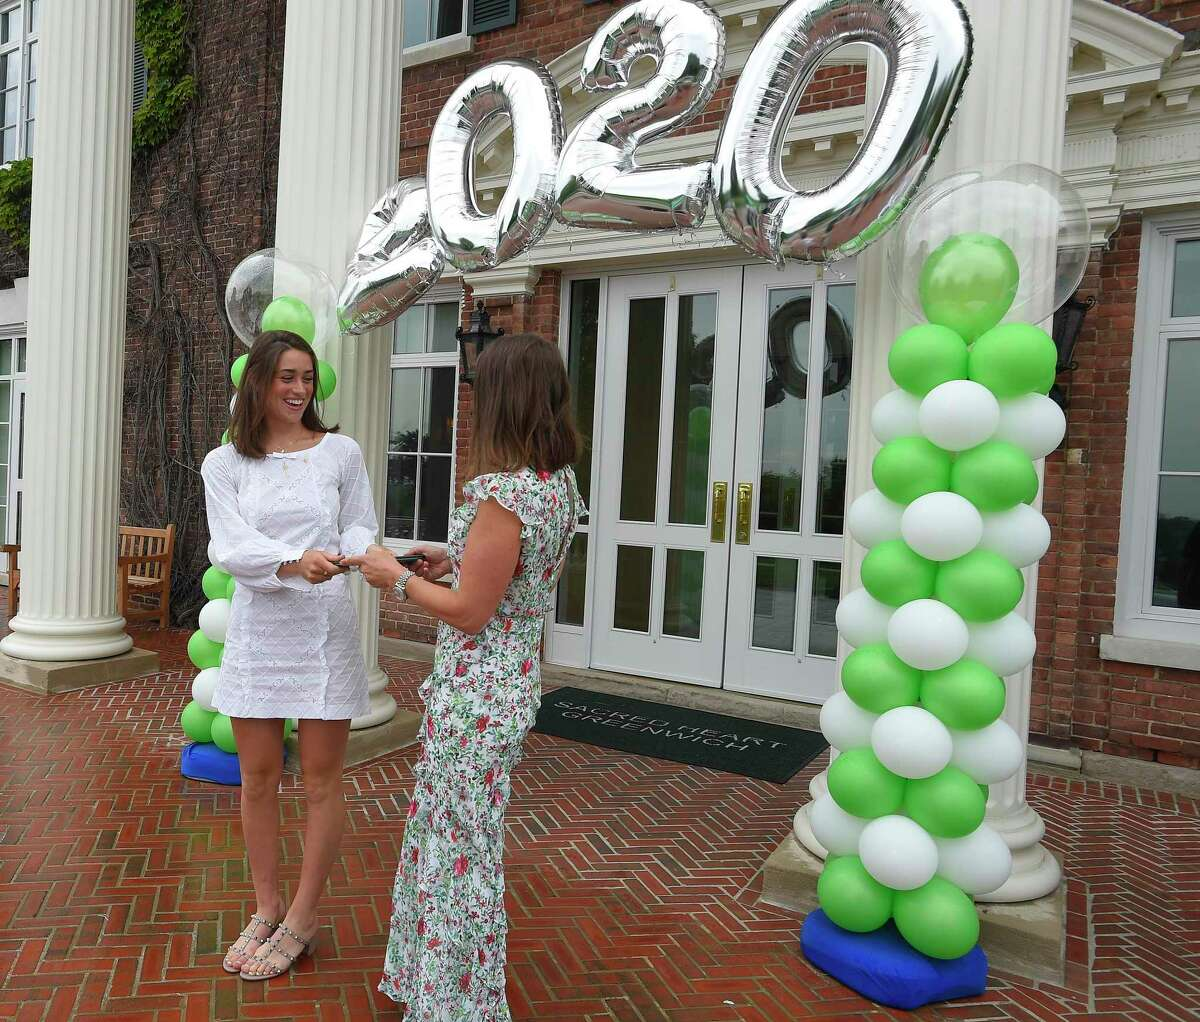 Emma Caruso and her mother Sandra Caruso, a trustee at Sacred Heart Greenwich, pose for a photograph as the Class of 2020 celebrates with a Graduation Parade at the school in Greenwich, Connecticut on June 5, 2020. Each Senior was presented with their diplomas and had a photograph taken with a celebratory display in front of the school's Salisbury Hall. After distance learning to close the year due to the coronavirus, Greenwich's private schools have set Sept. 8 to reopen with flexible plans to try and get students back on campus if it is safe.